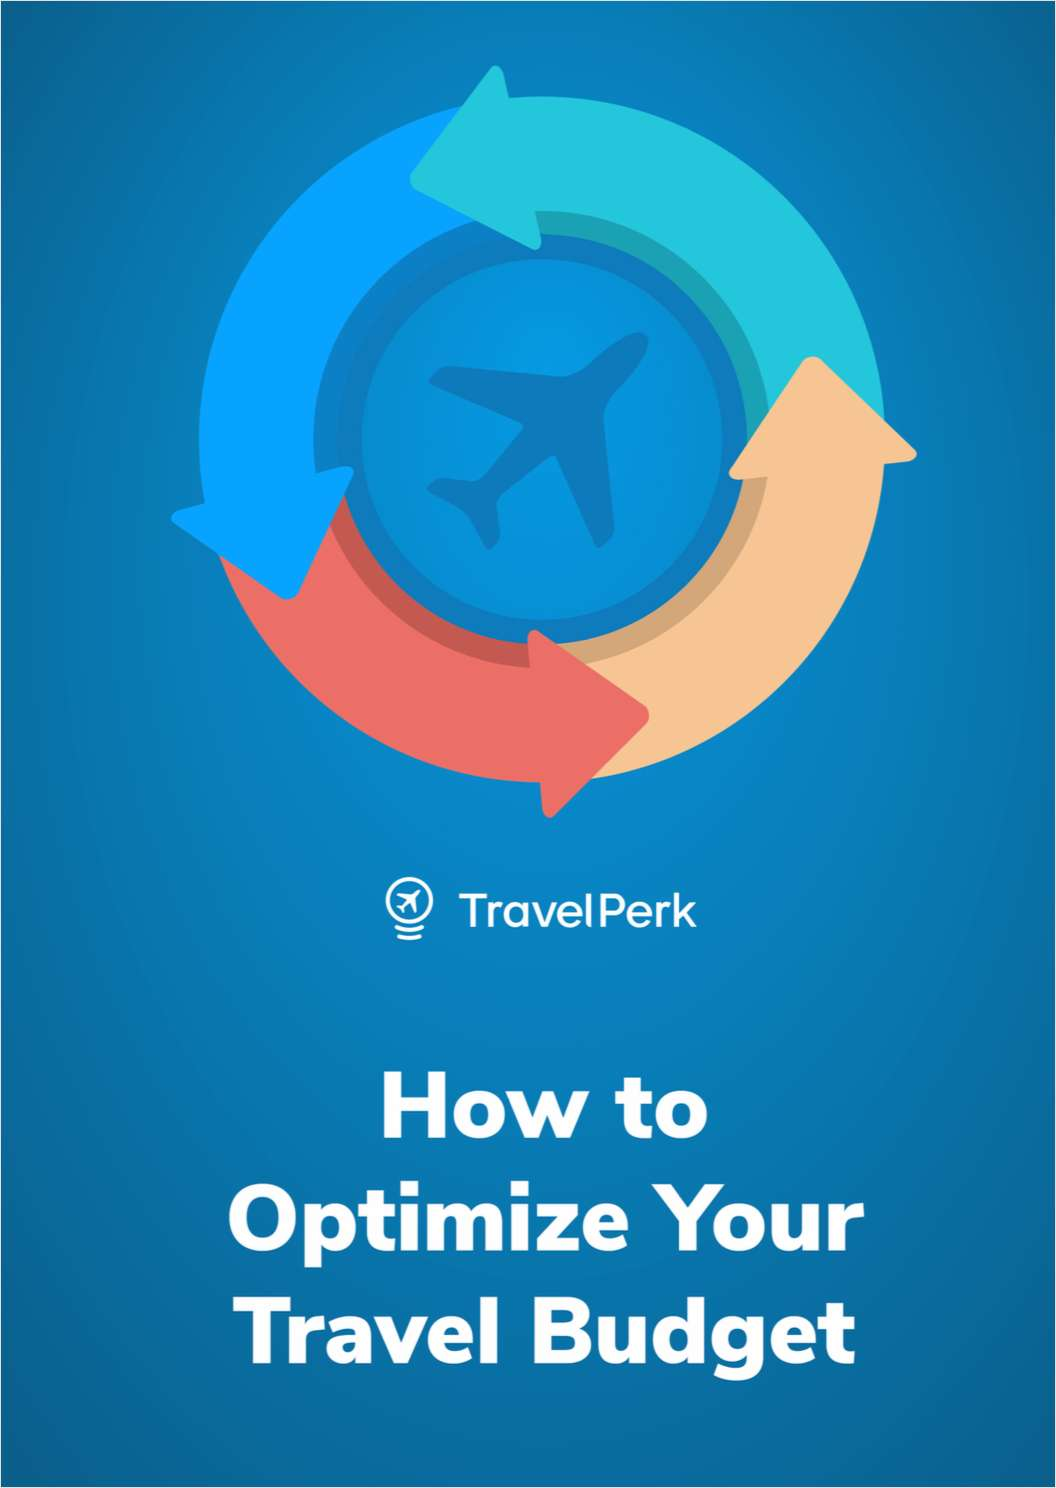 How to Optimize Your Travel Budget